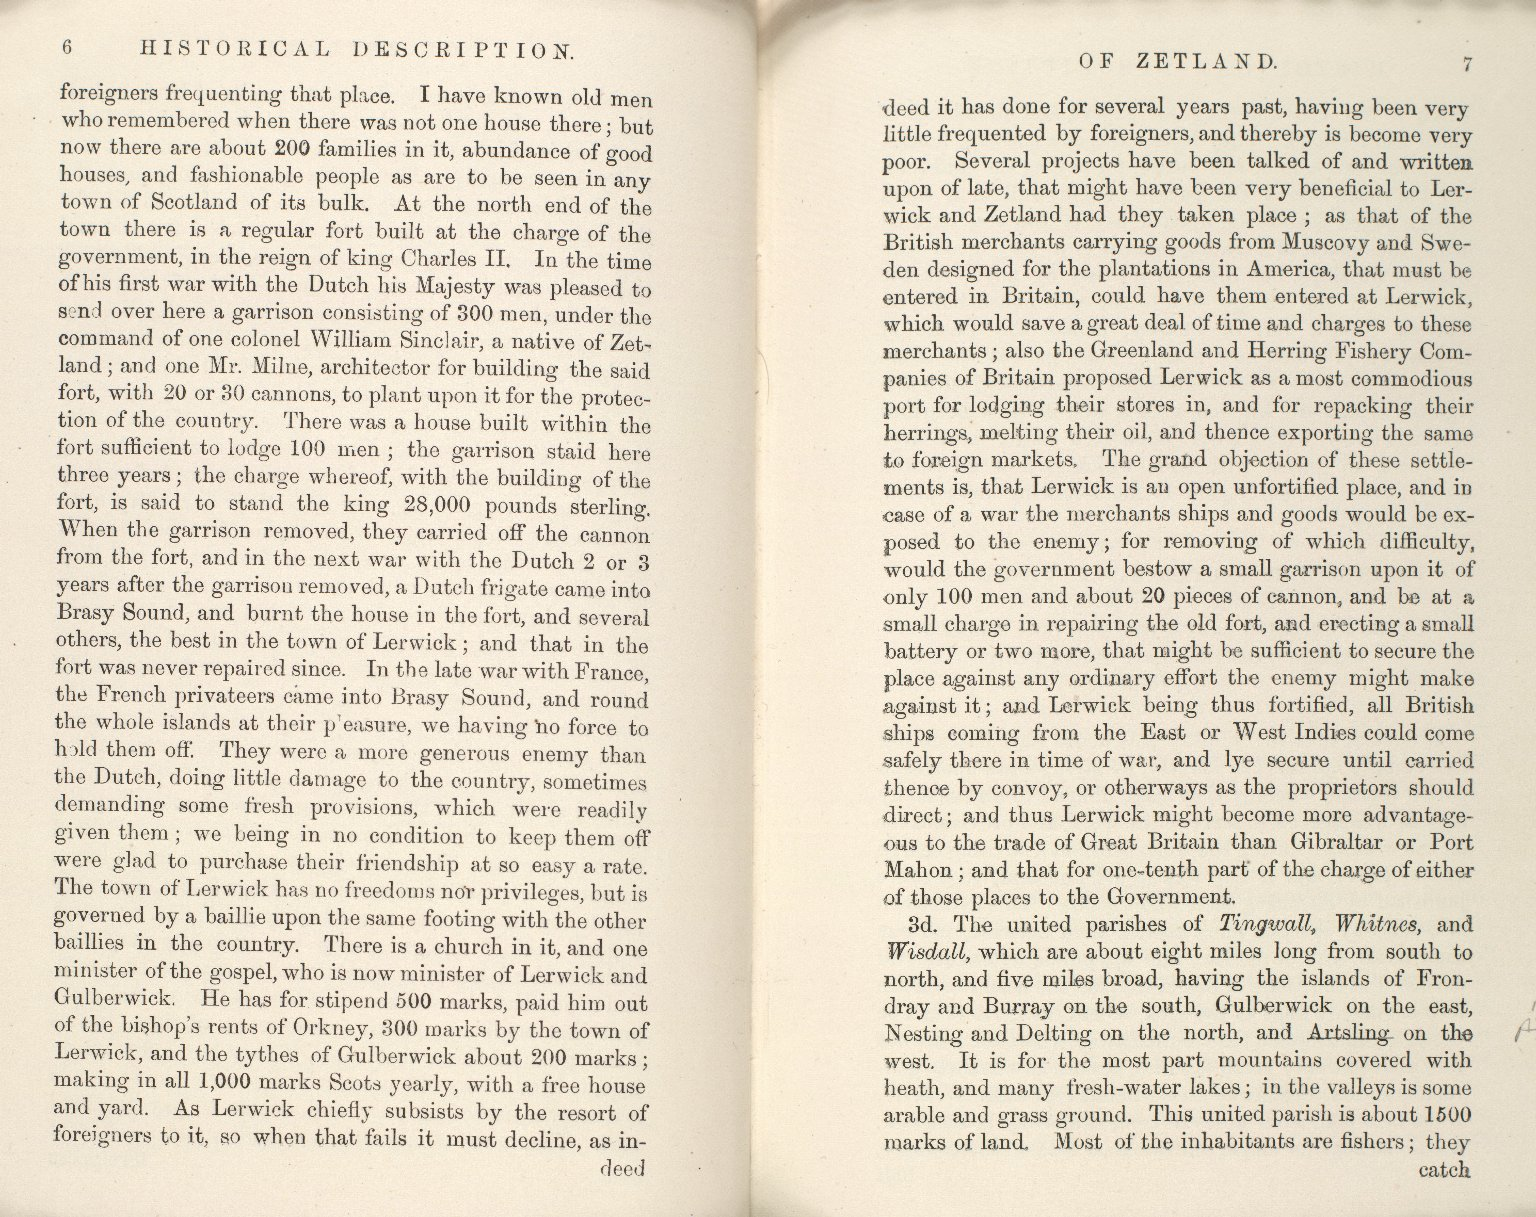 Historical Description of the Zetland Islands in the year 1733. [20 of 25]